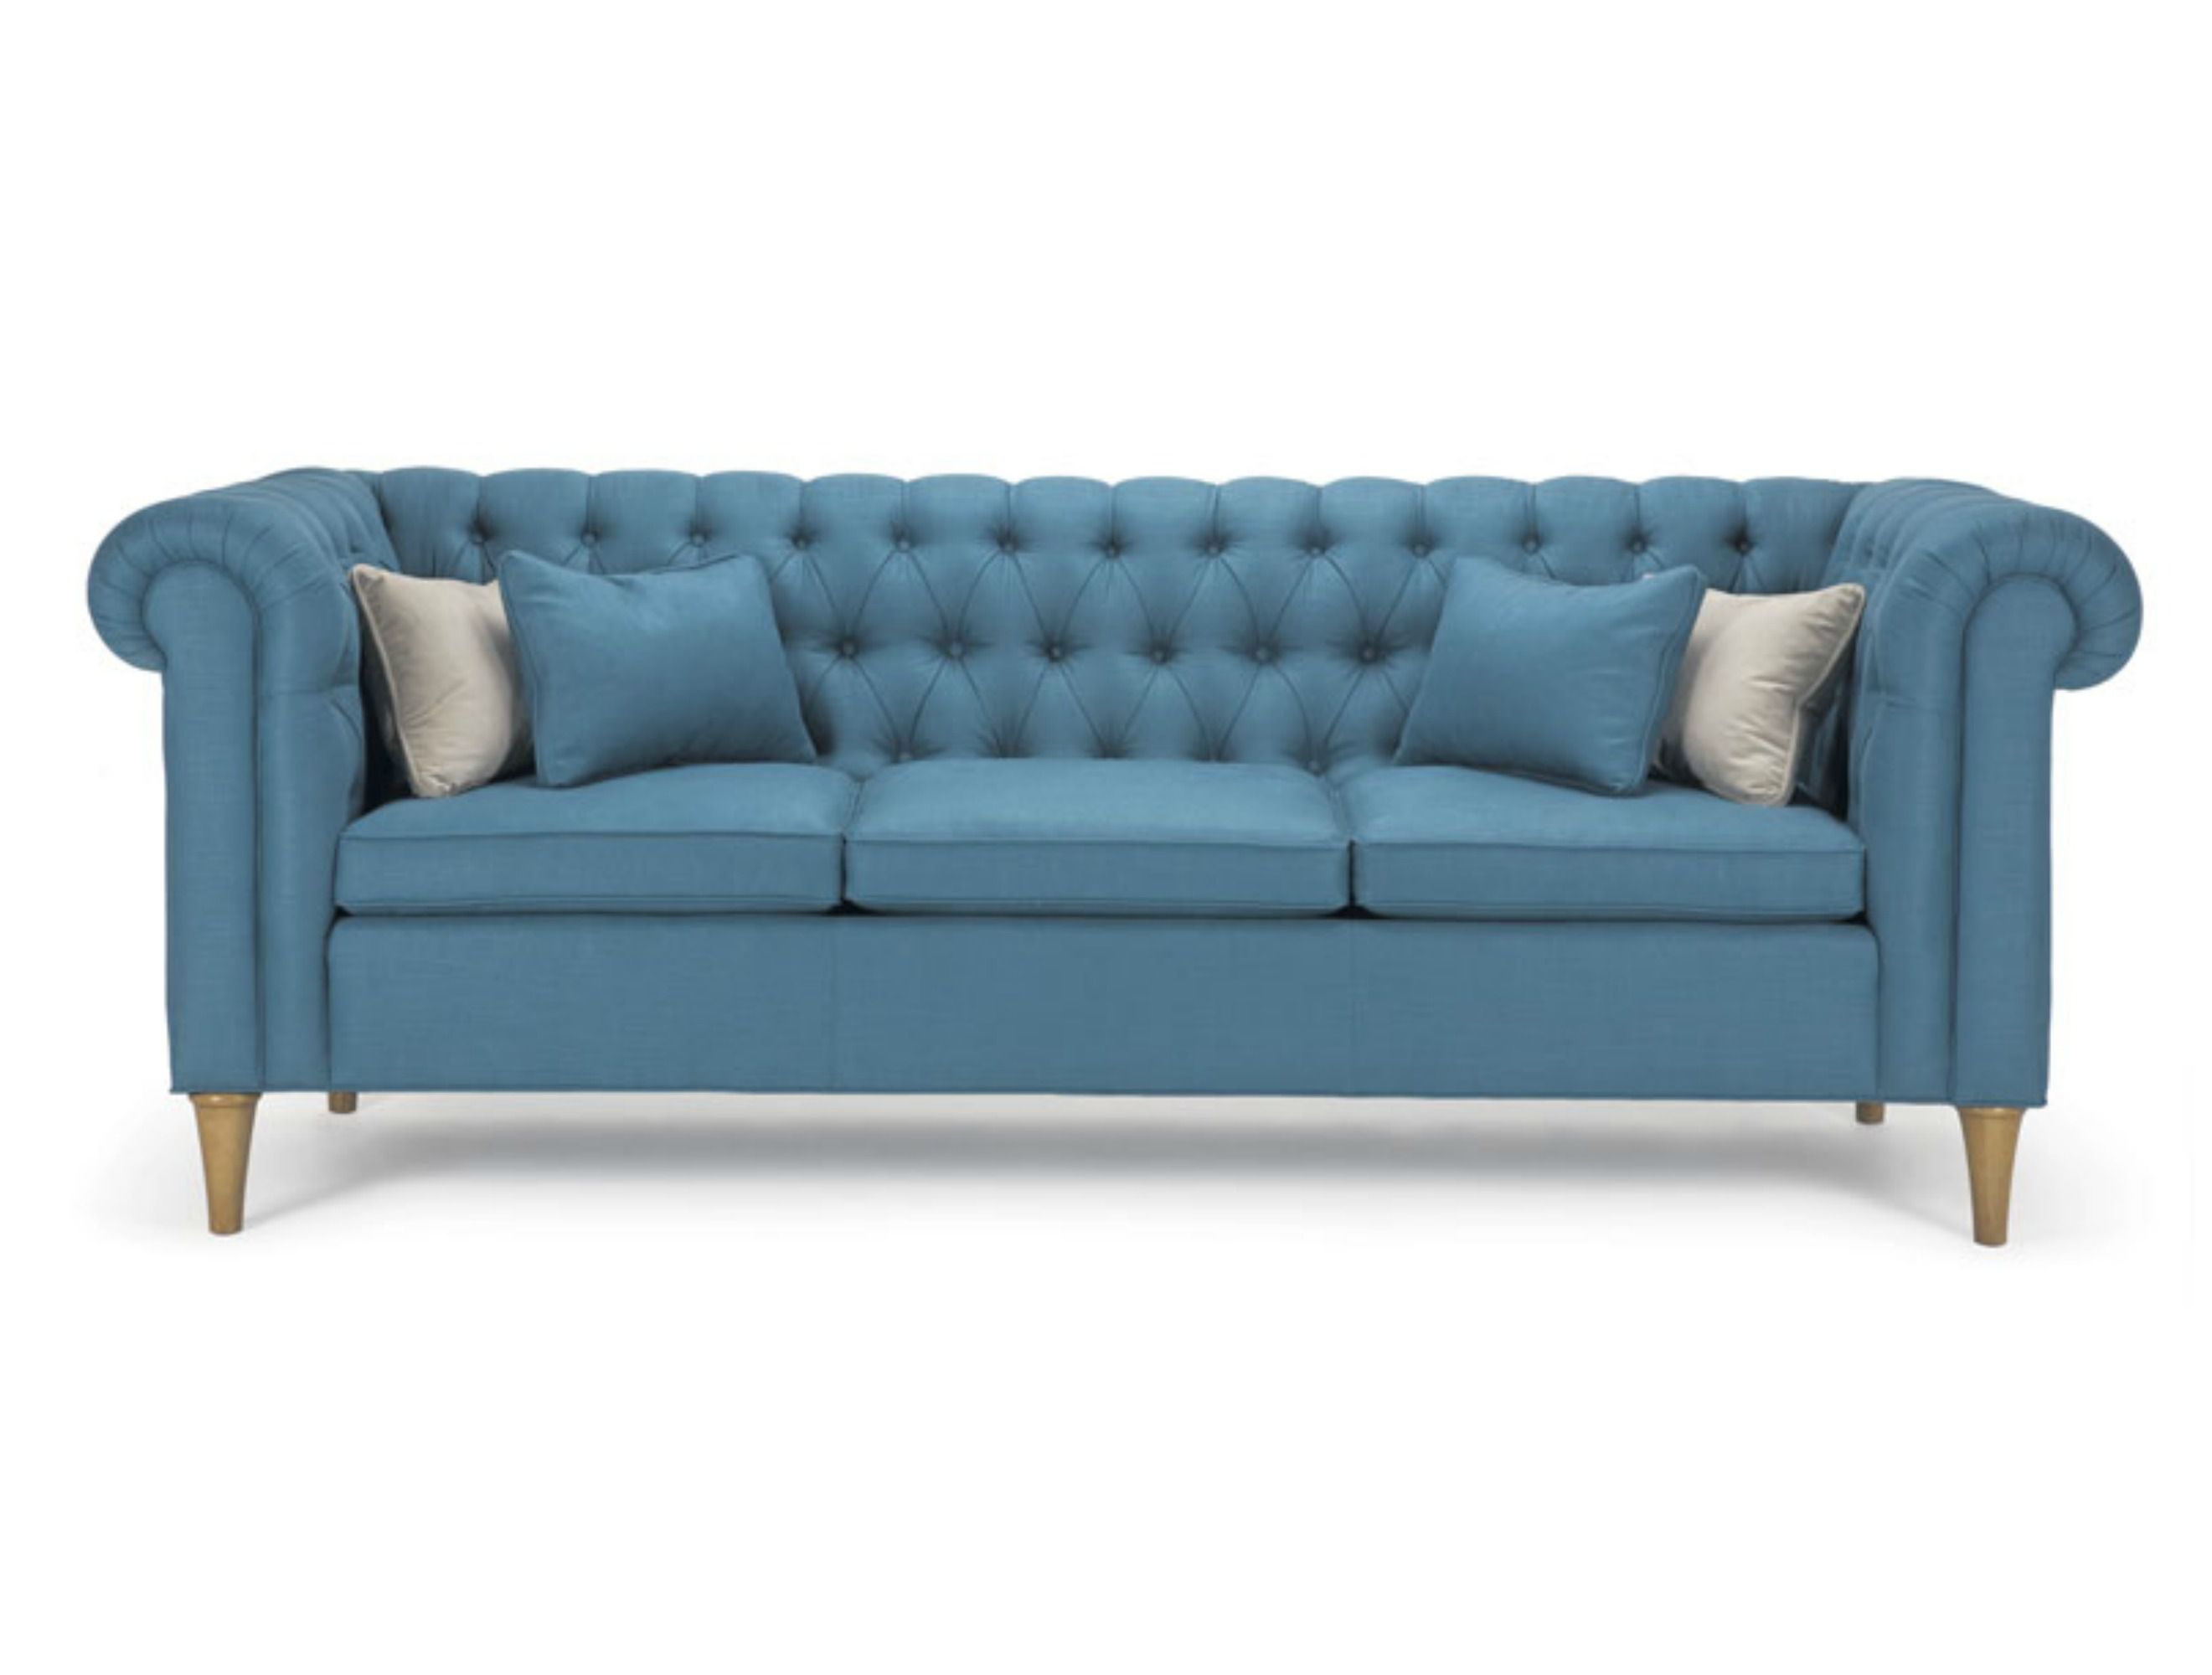 Blue Chesterfield form Barrymore furniture